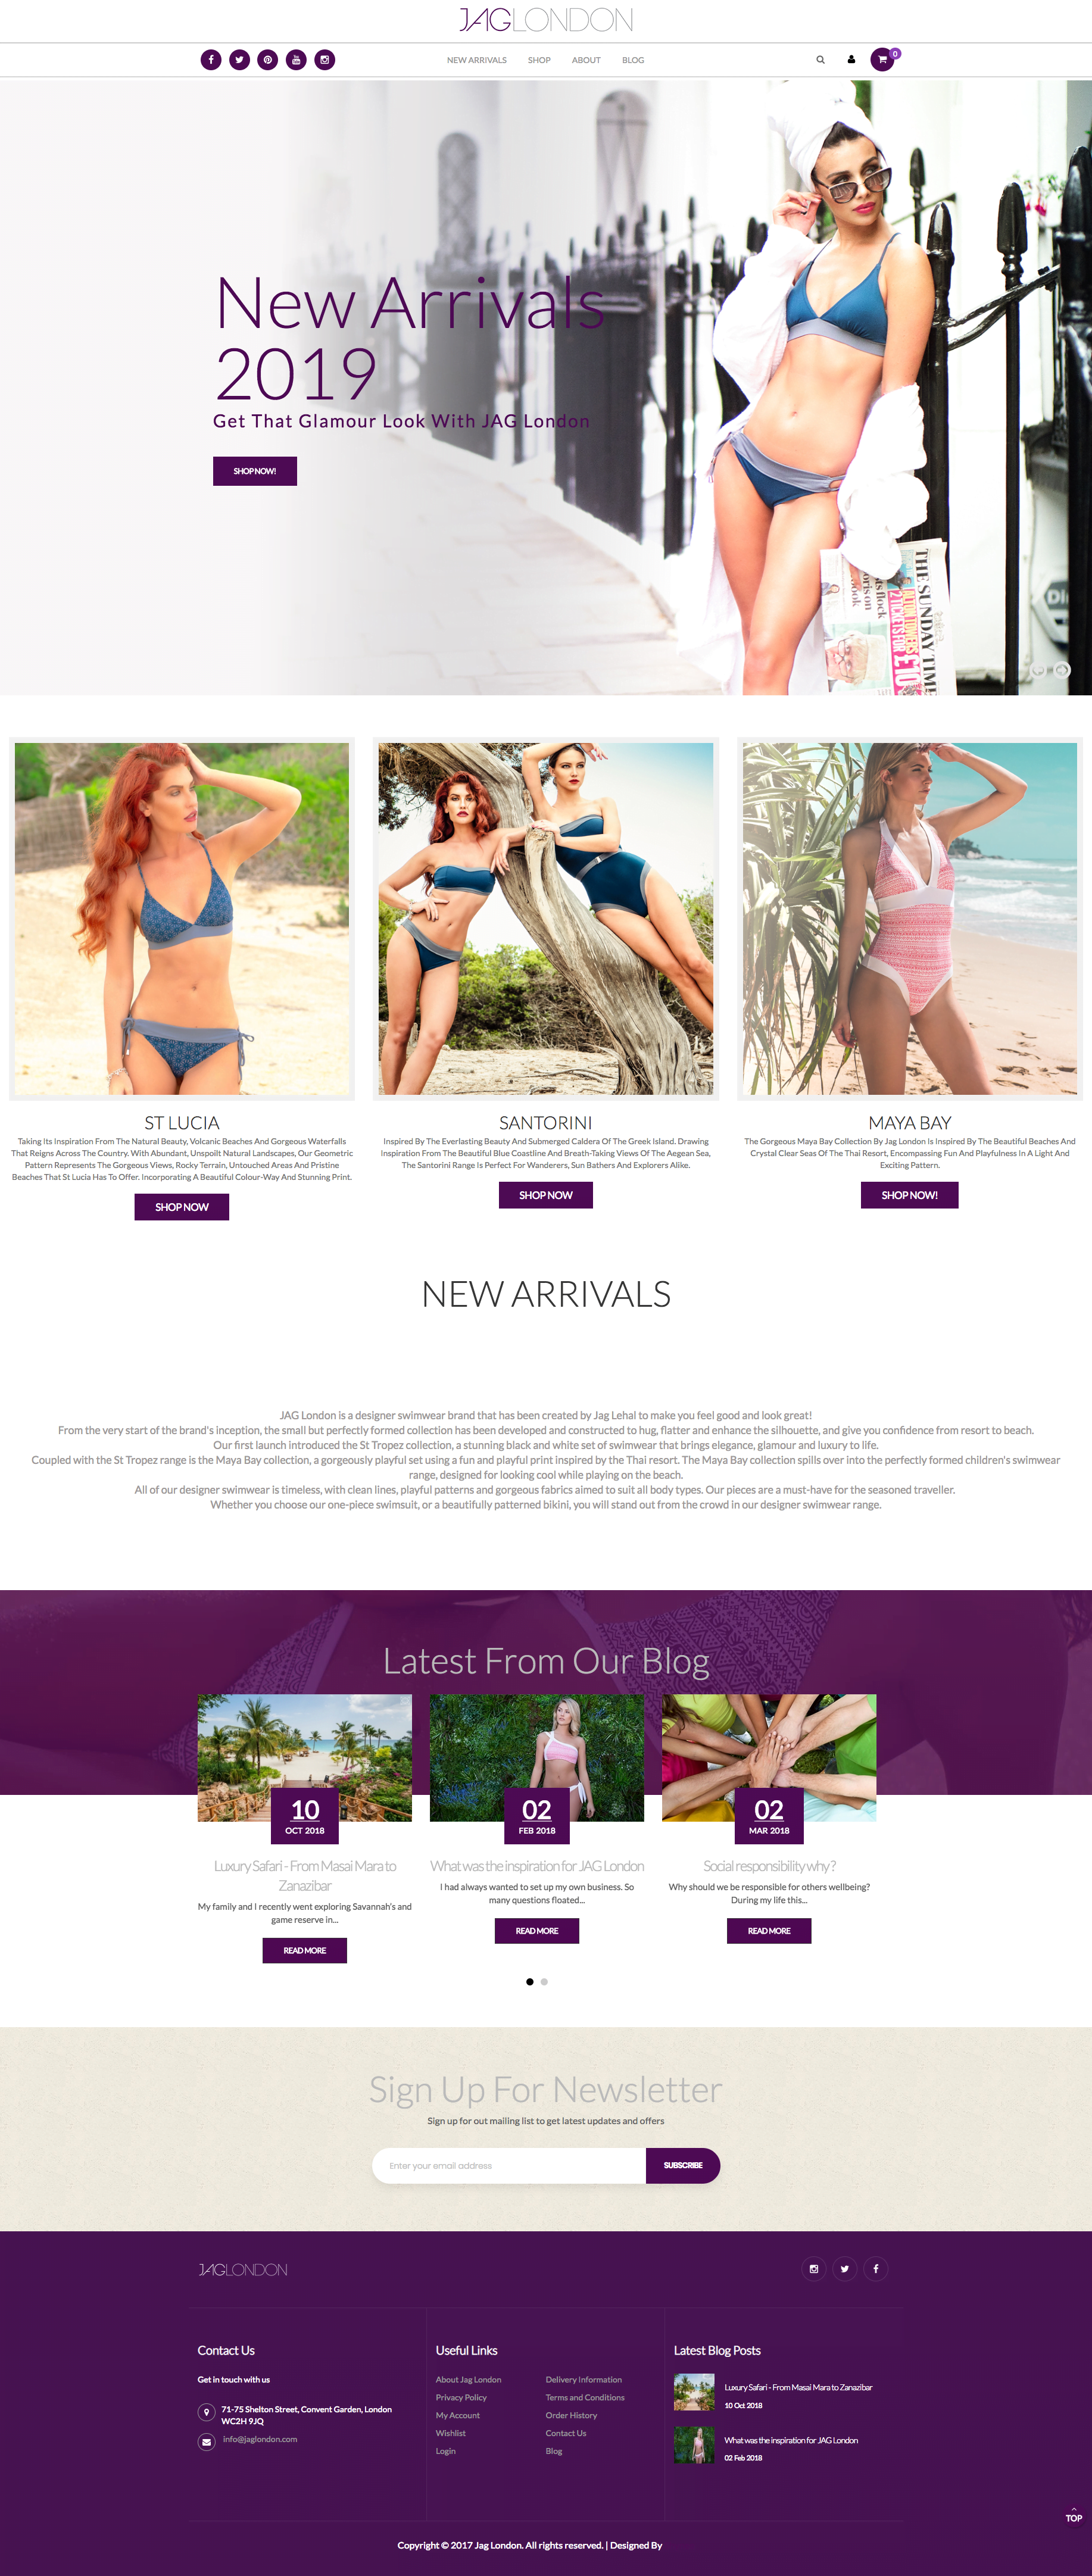 Jag London Swimwear| ecommerce website design